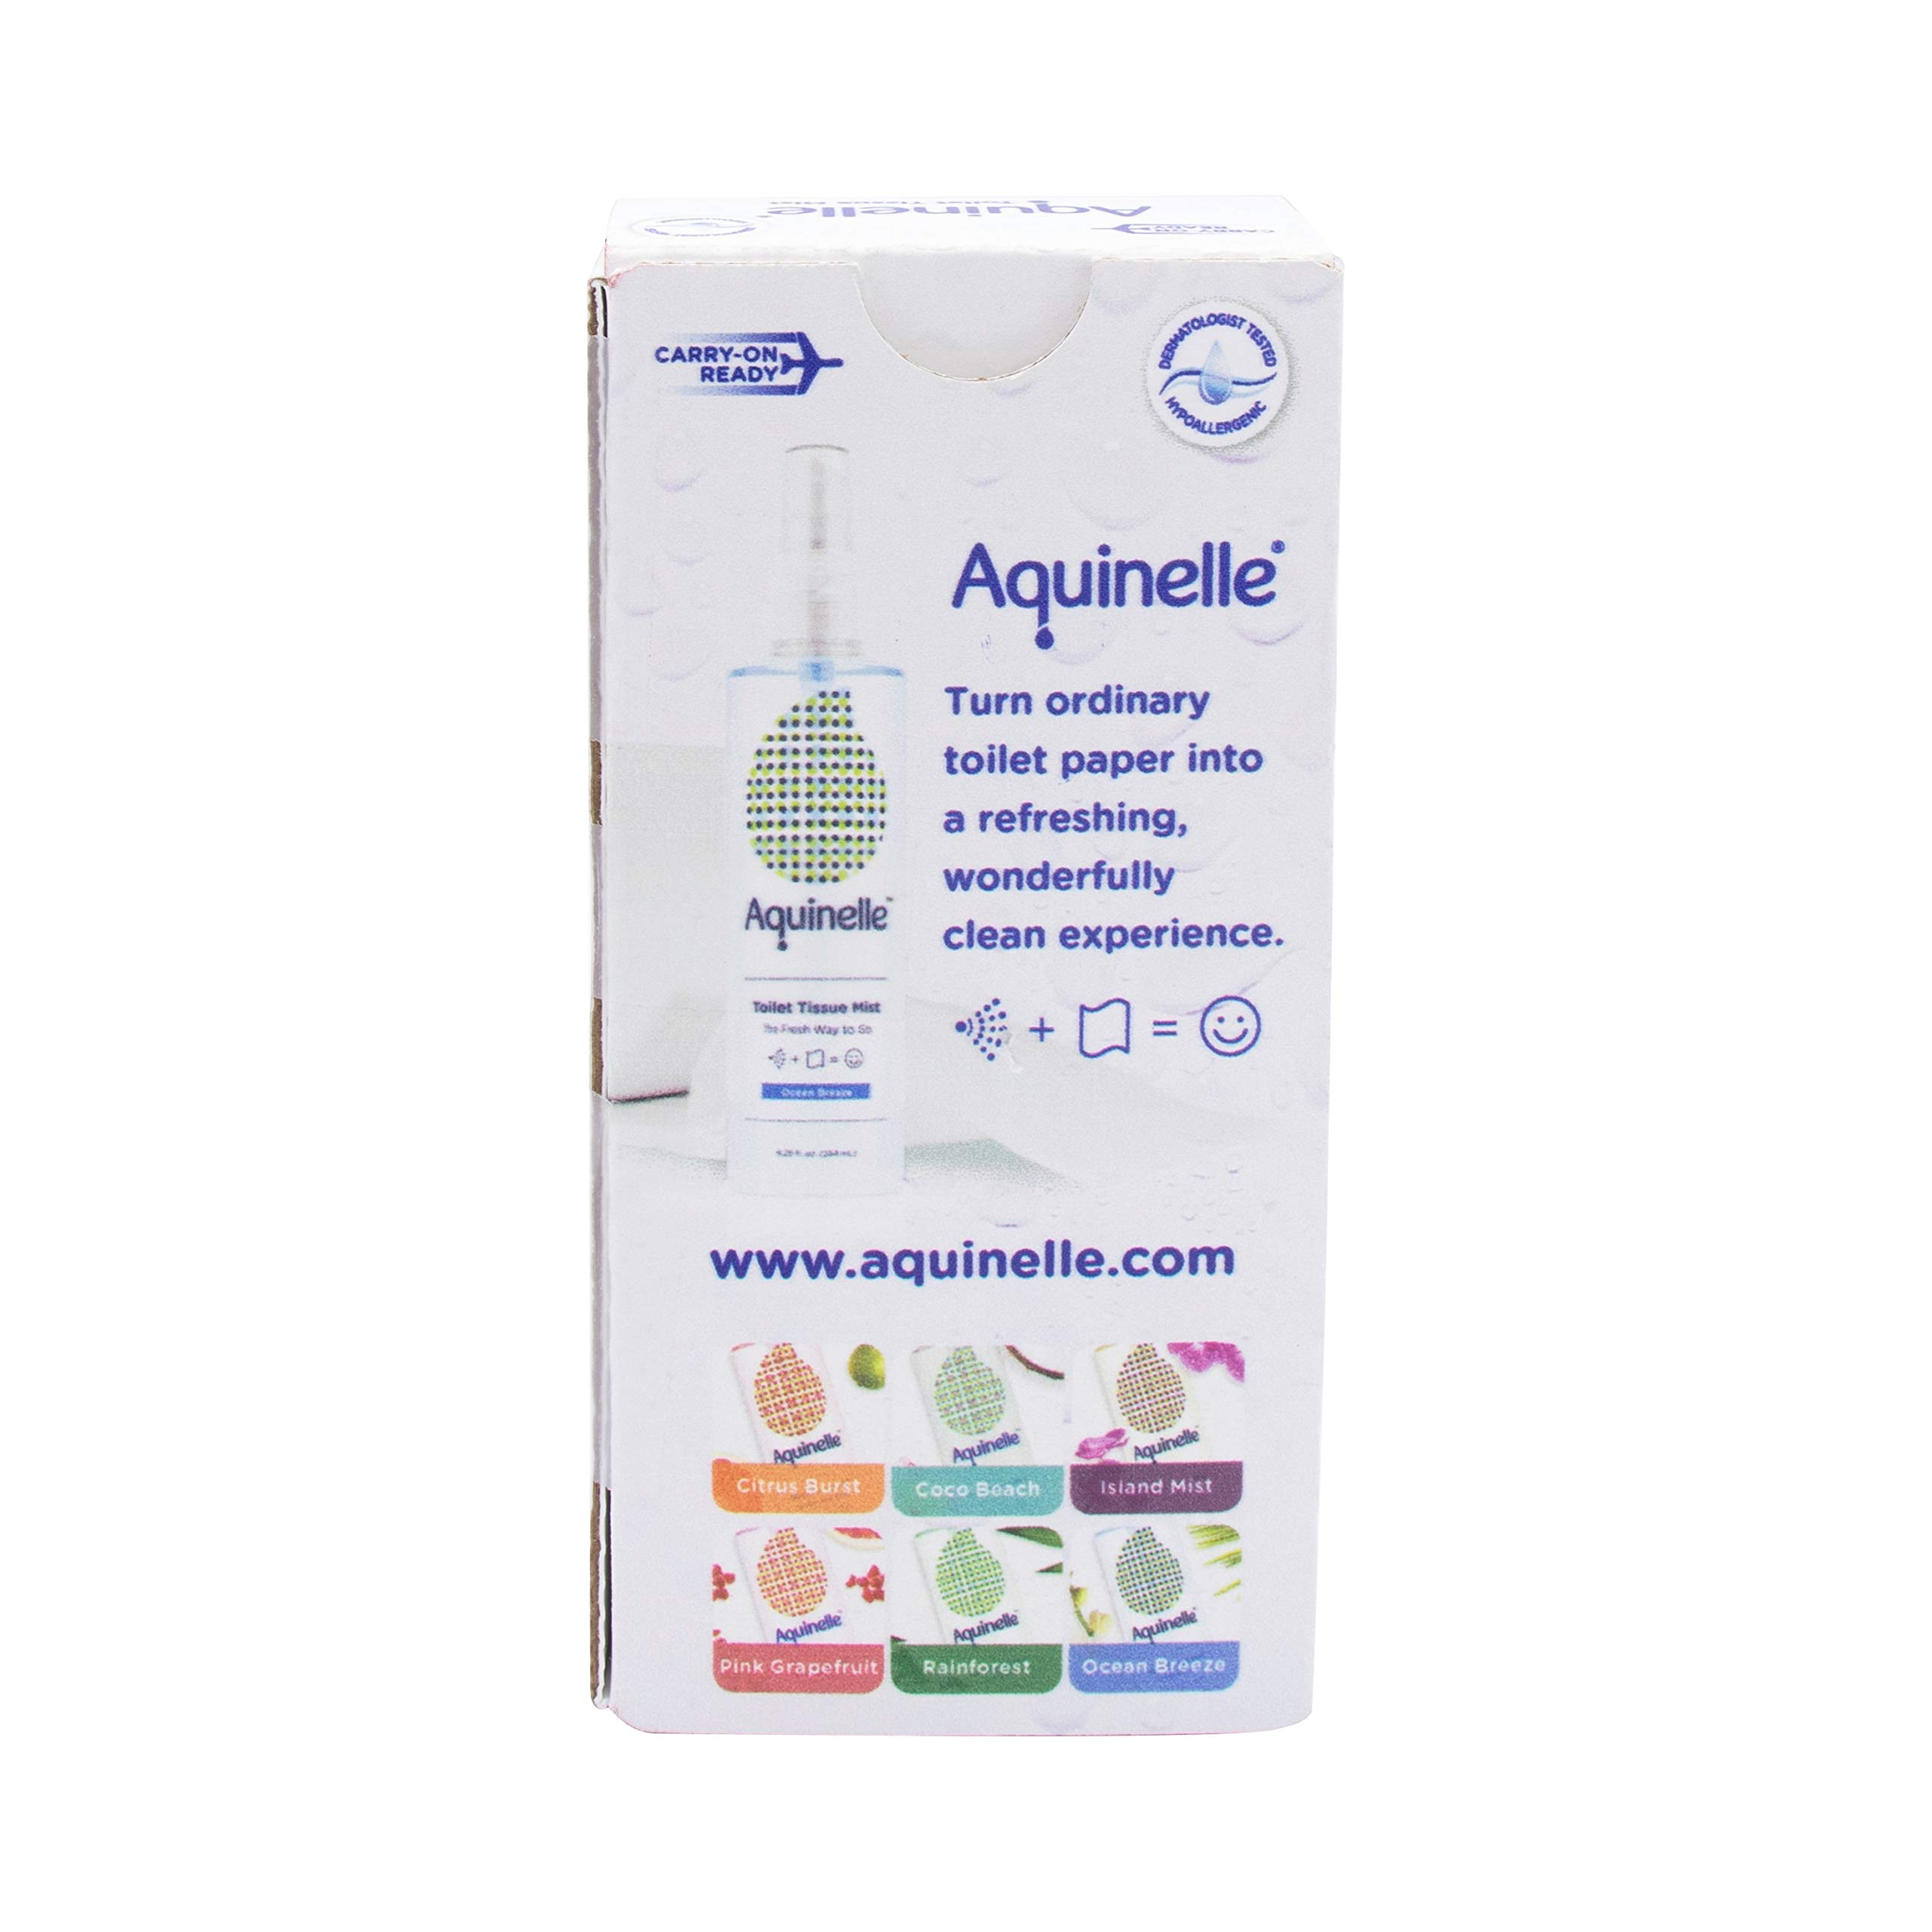 Aquinelle Toilet Tissue Mist Gift Set, Eco-Friendly & Non-Clogging Alternative to Flushable Wipes Simply Spray On Any Folded Toilet Paper (2 Pack Ocean Breeze 3.25 oz) by Aquinelle